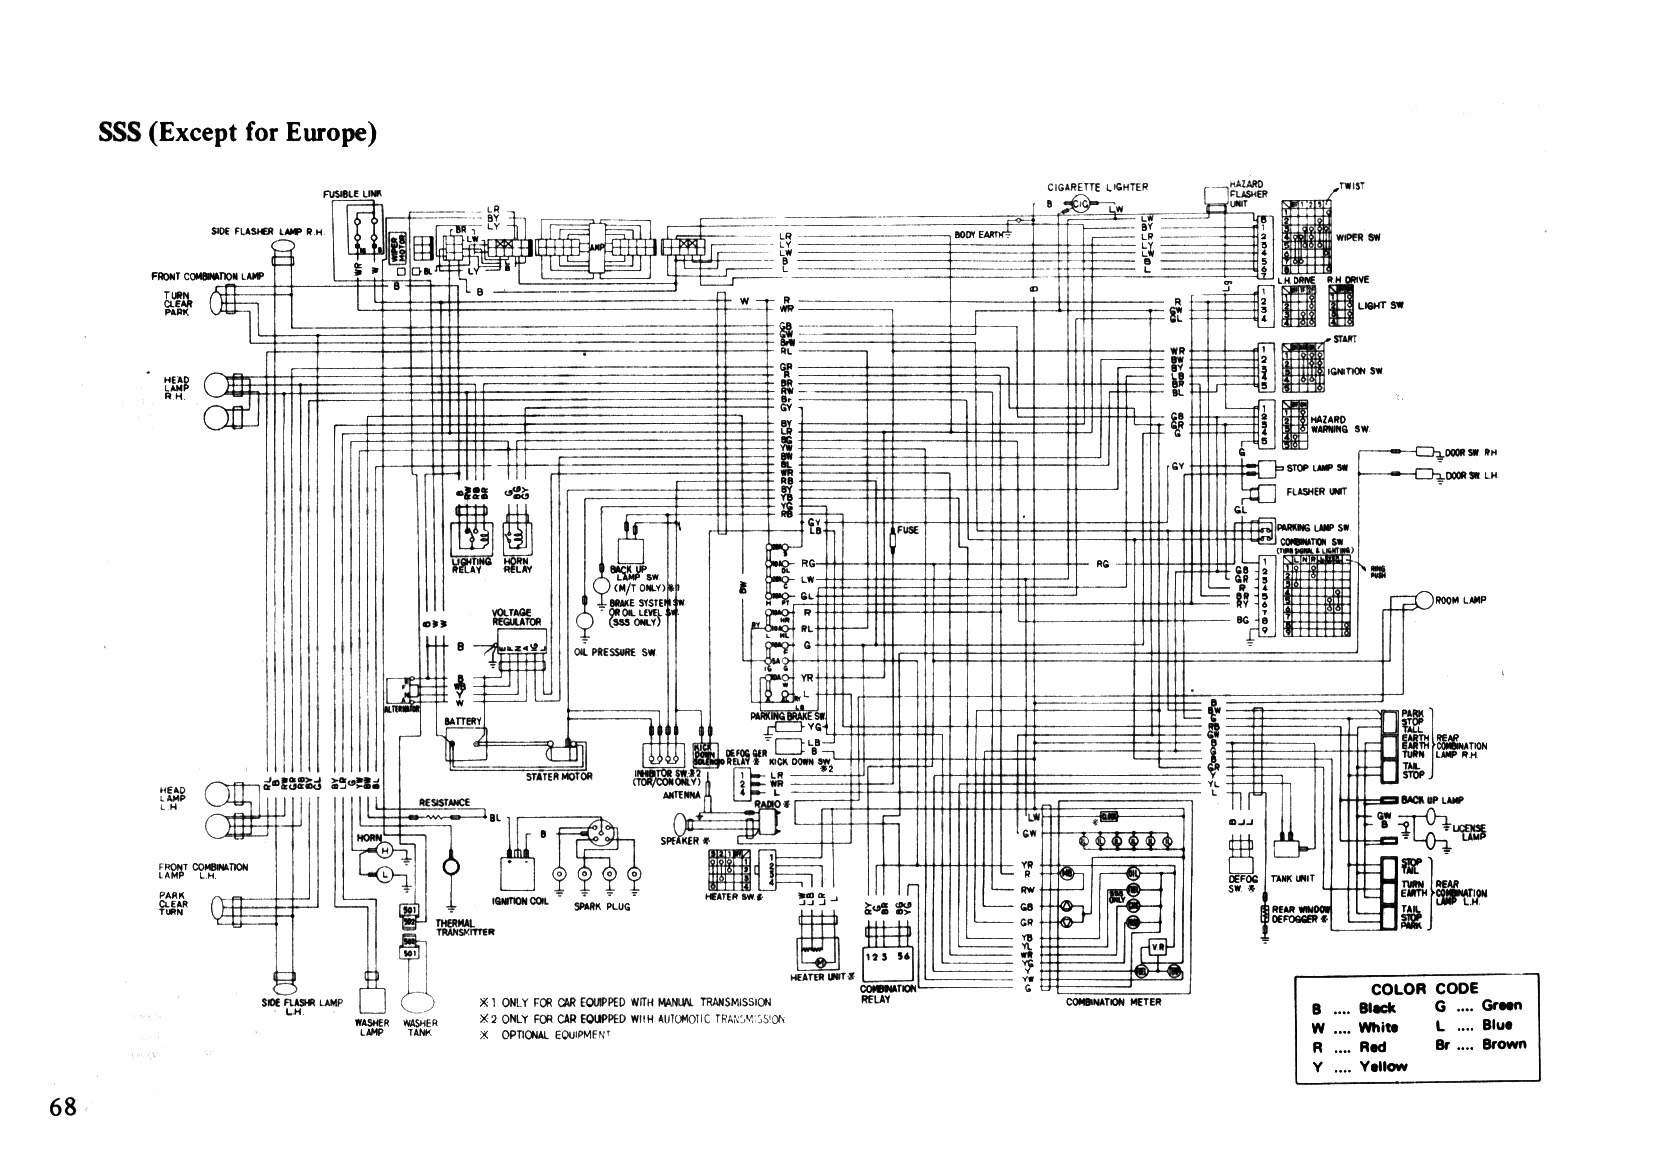 68 Wiring Diagram SSS (Except for Europe) datsun 610 (180b) owners manual 1974 (au) page 68 (100dpi datsun 280z wiring diagram at soozxer.org